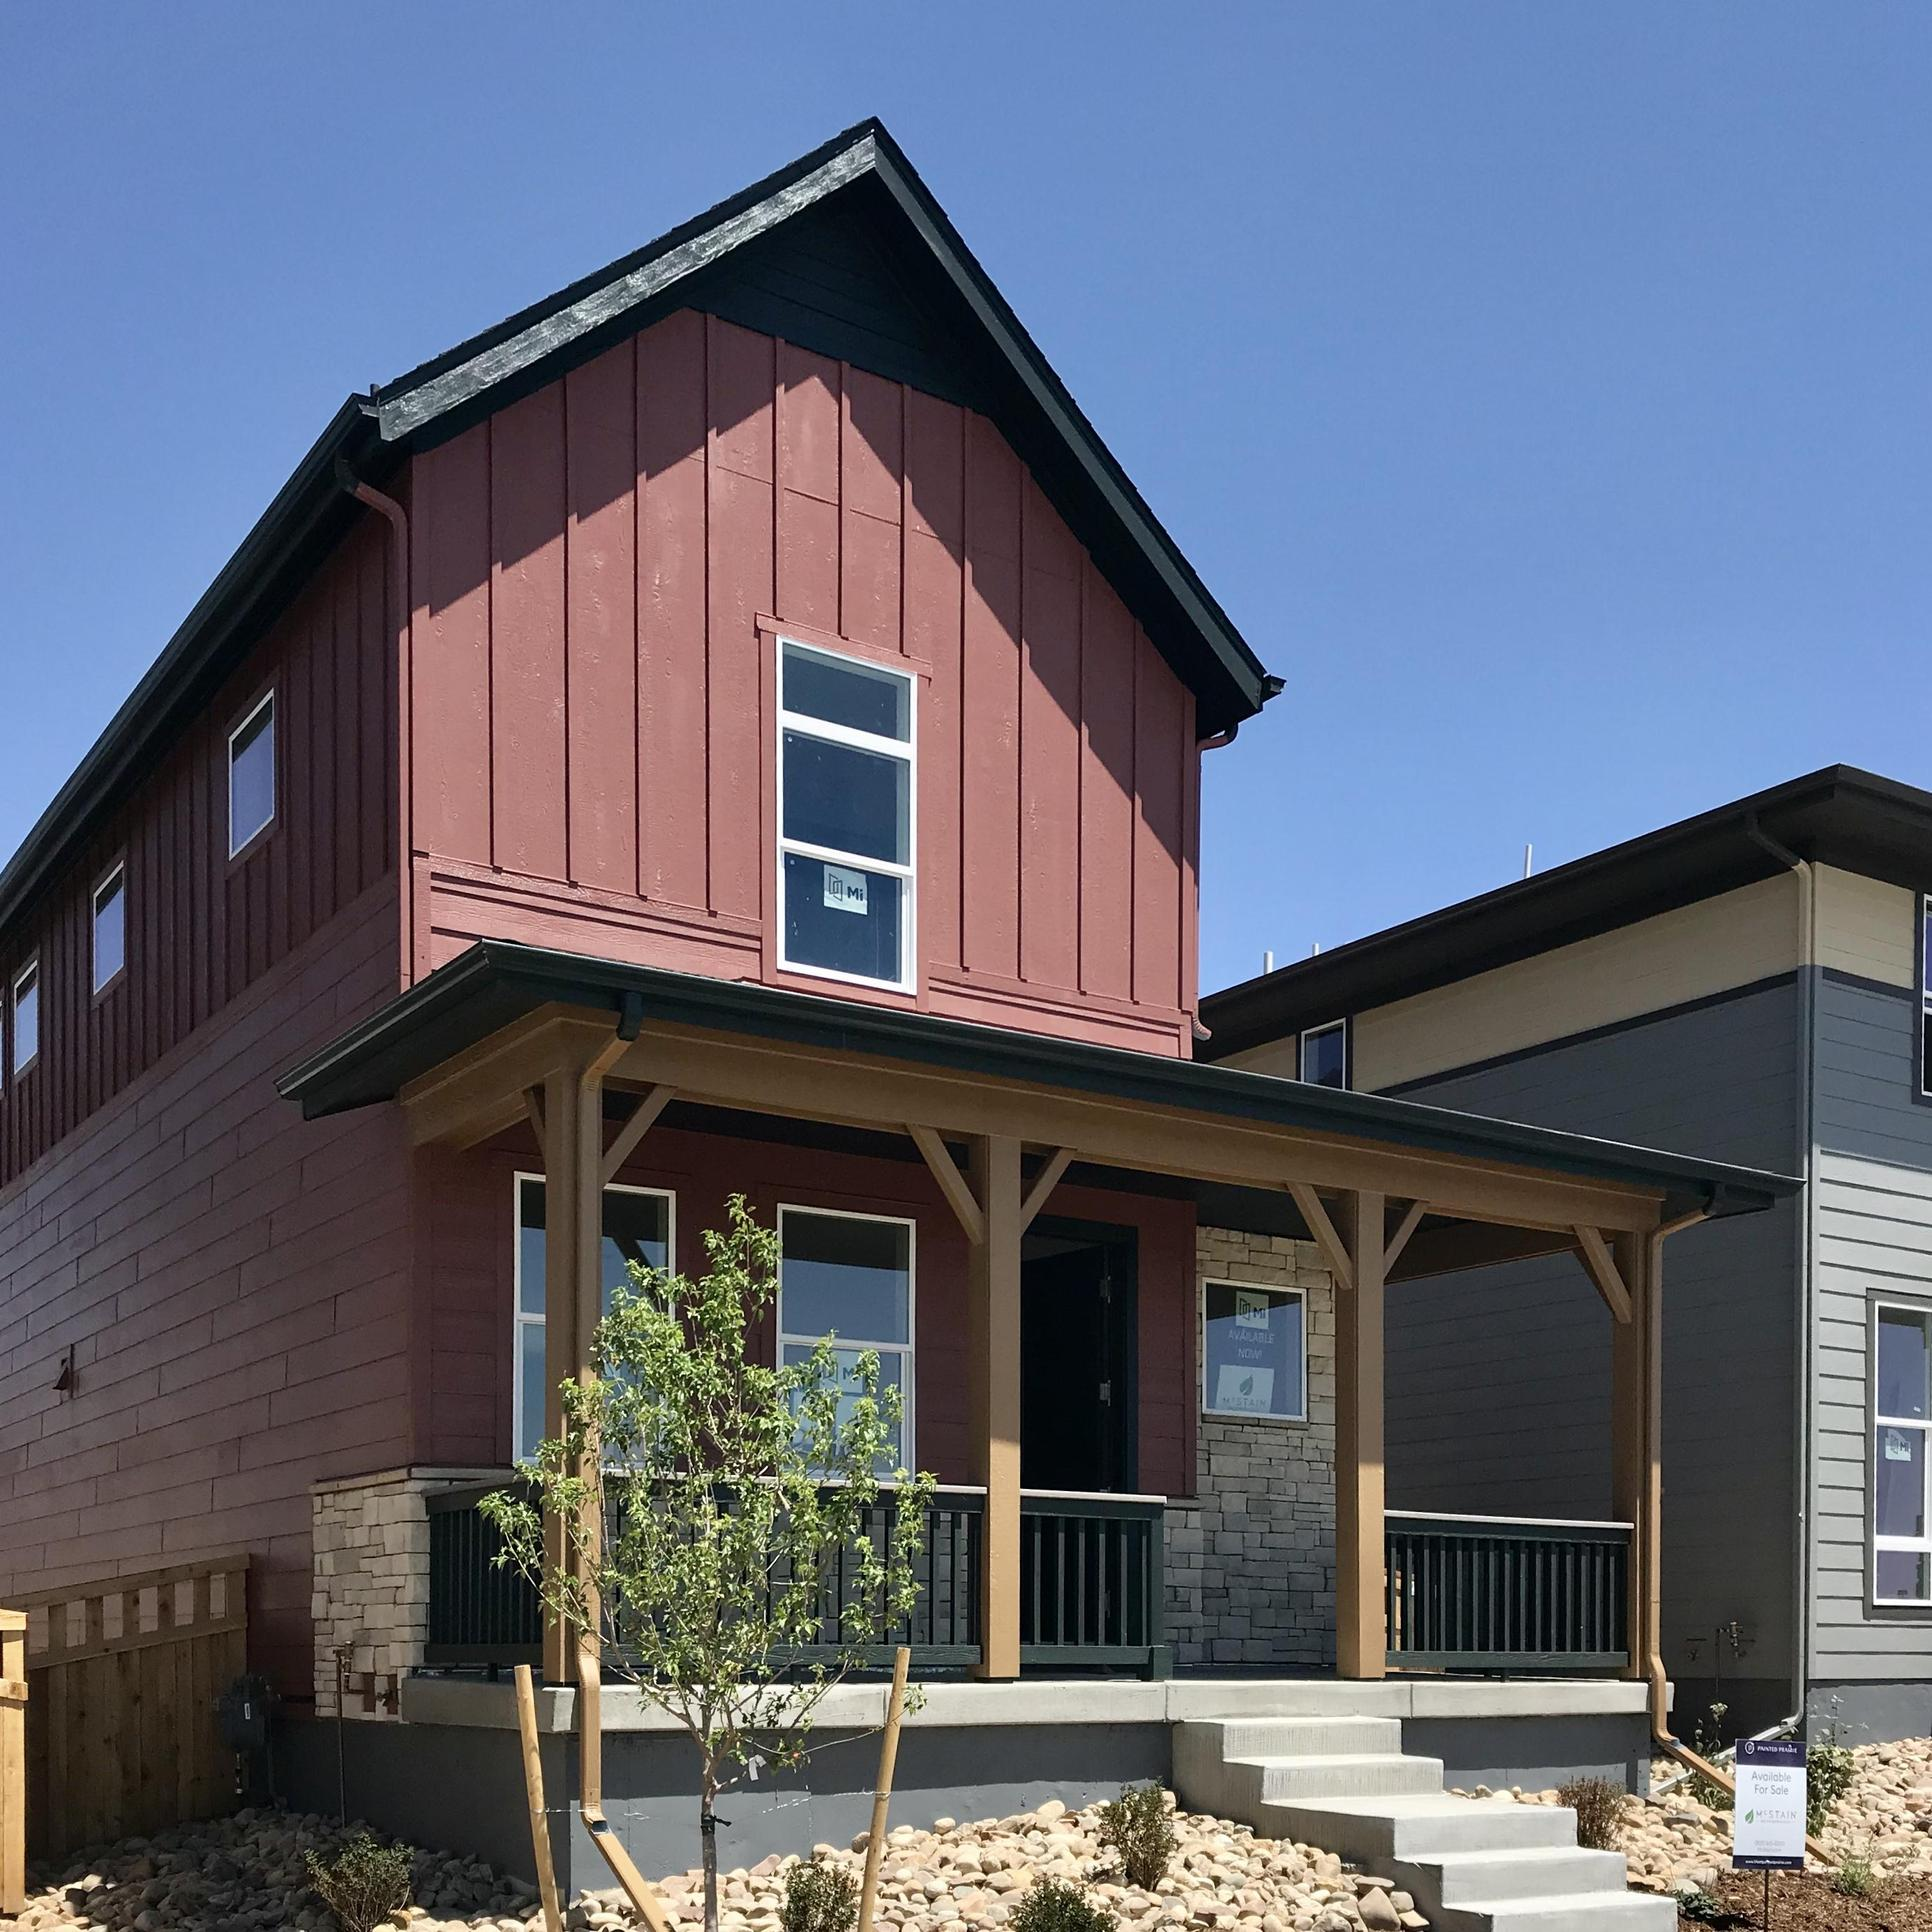 Cameo Farmhouse at Painted Prairie:Completion September 2020!